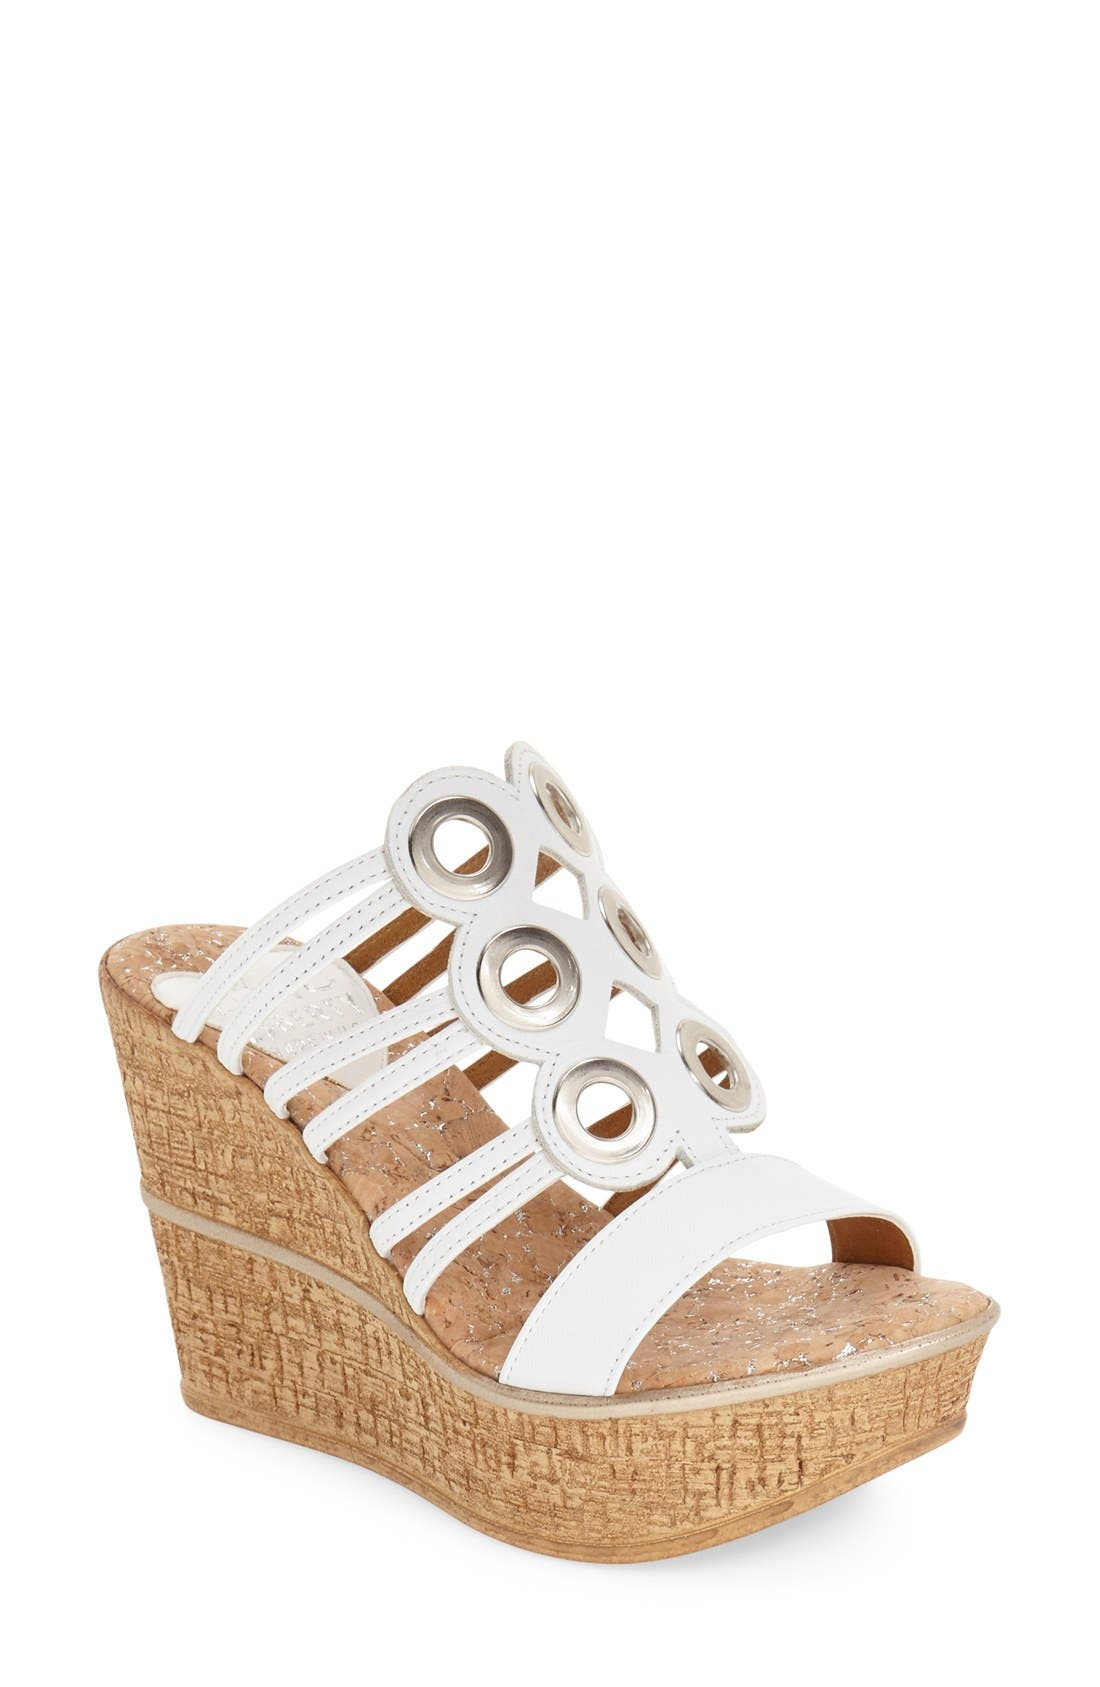 Main Image - Love and Liberty 'Elise' Wedge Sandal (Women)